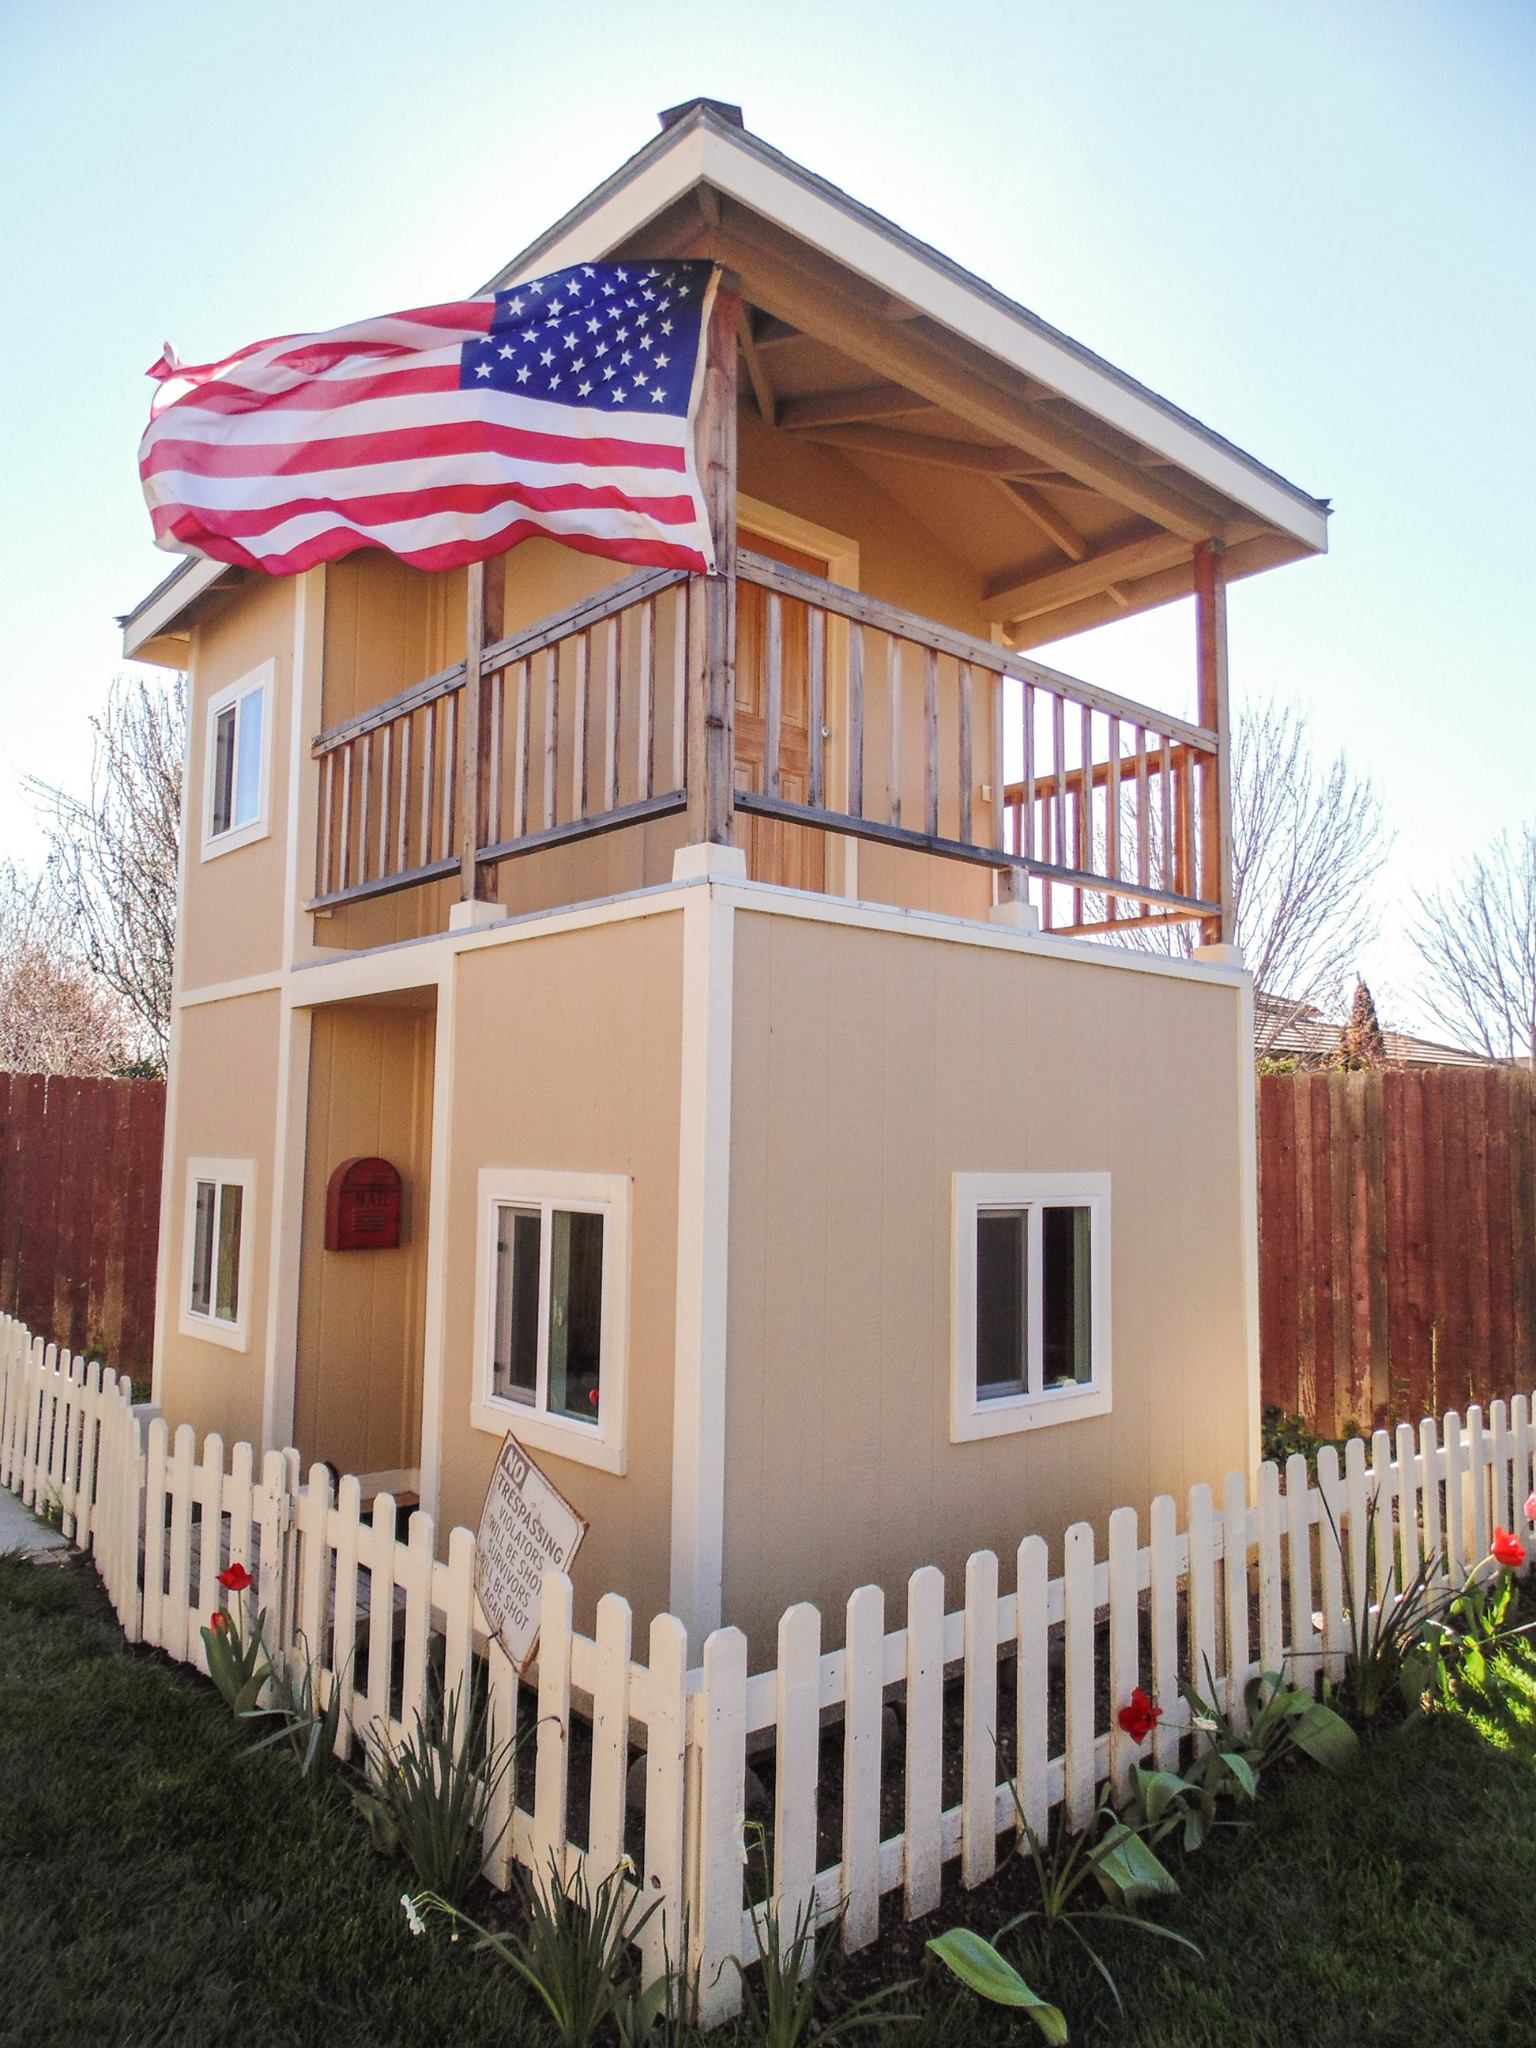 Two story playhouse with balcony